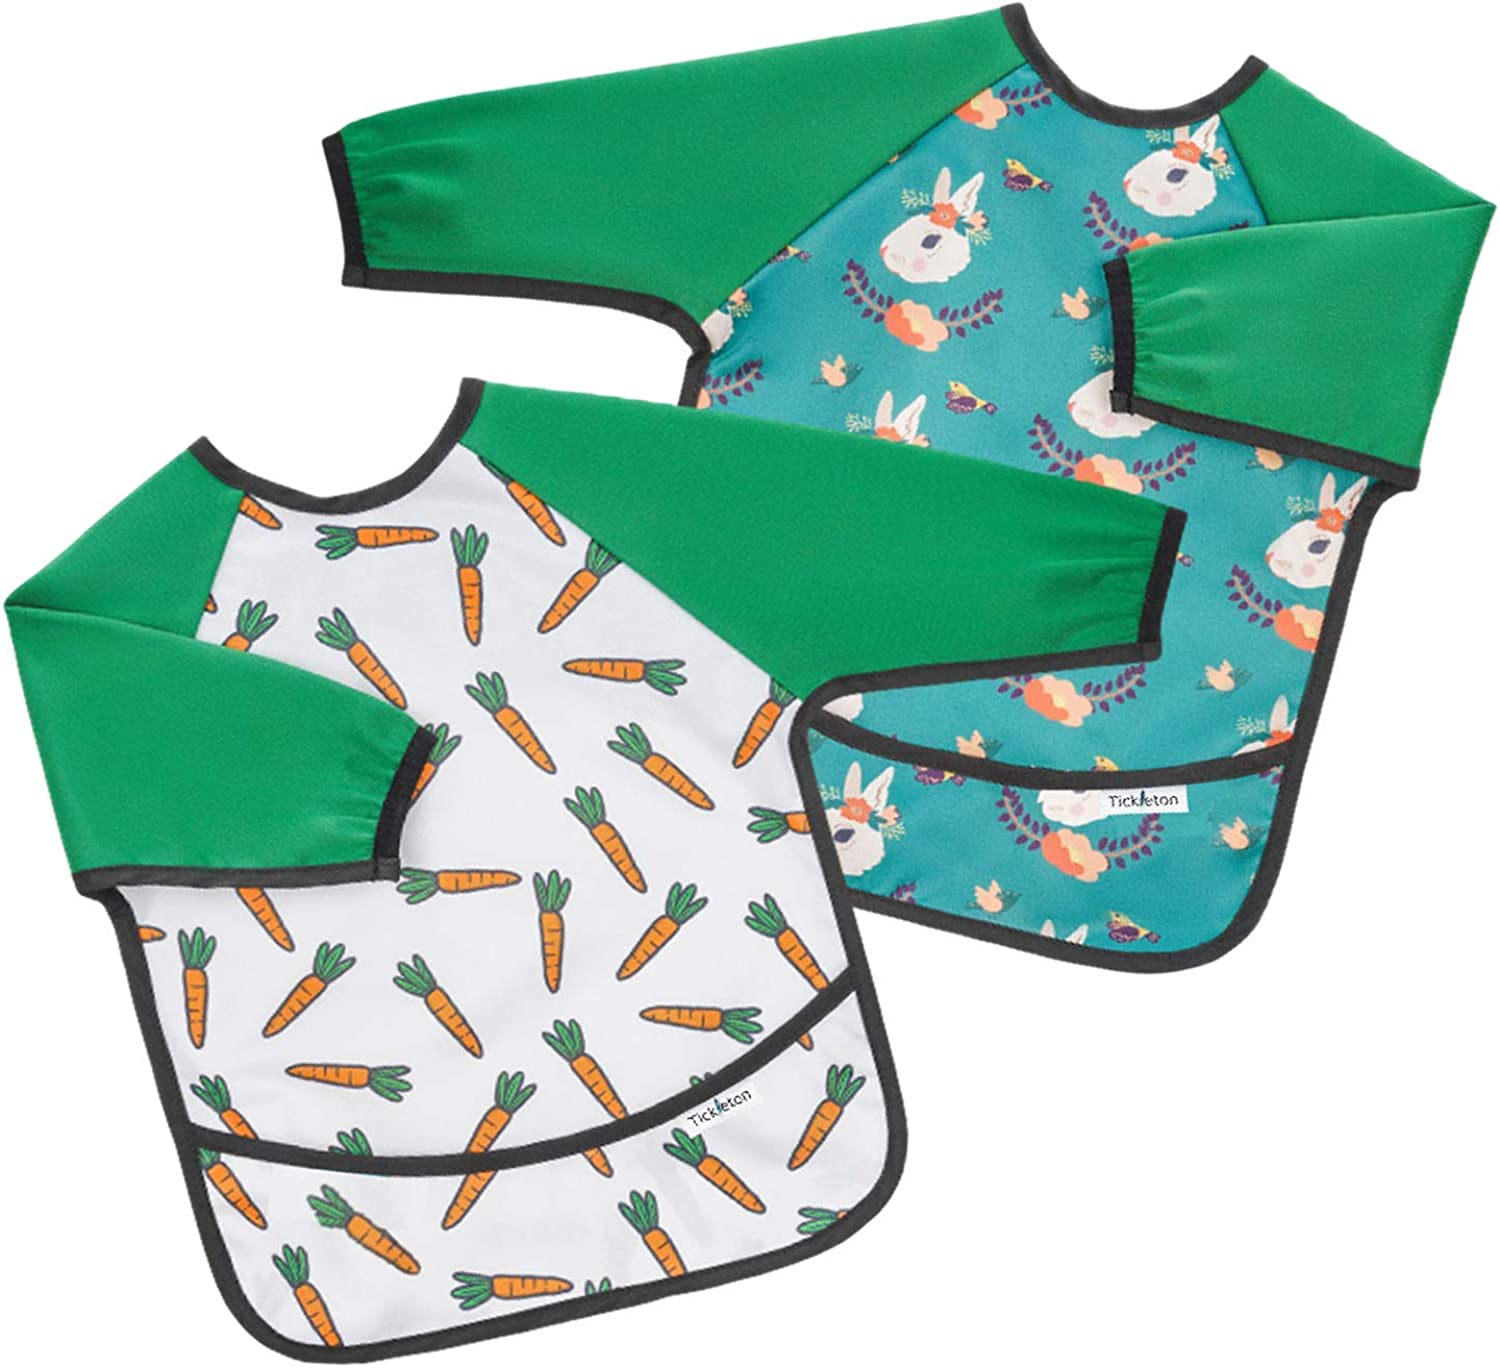 Tickleton Waterproof Long Sleeve Bibs for Babies 2 pcs │Baby Smock for Eating with Pocket for 6-24 Months │Baby Led Weaning Supplies │Machine Washable │Lightweight │Cute Unisex Designs